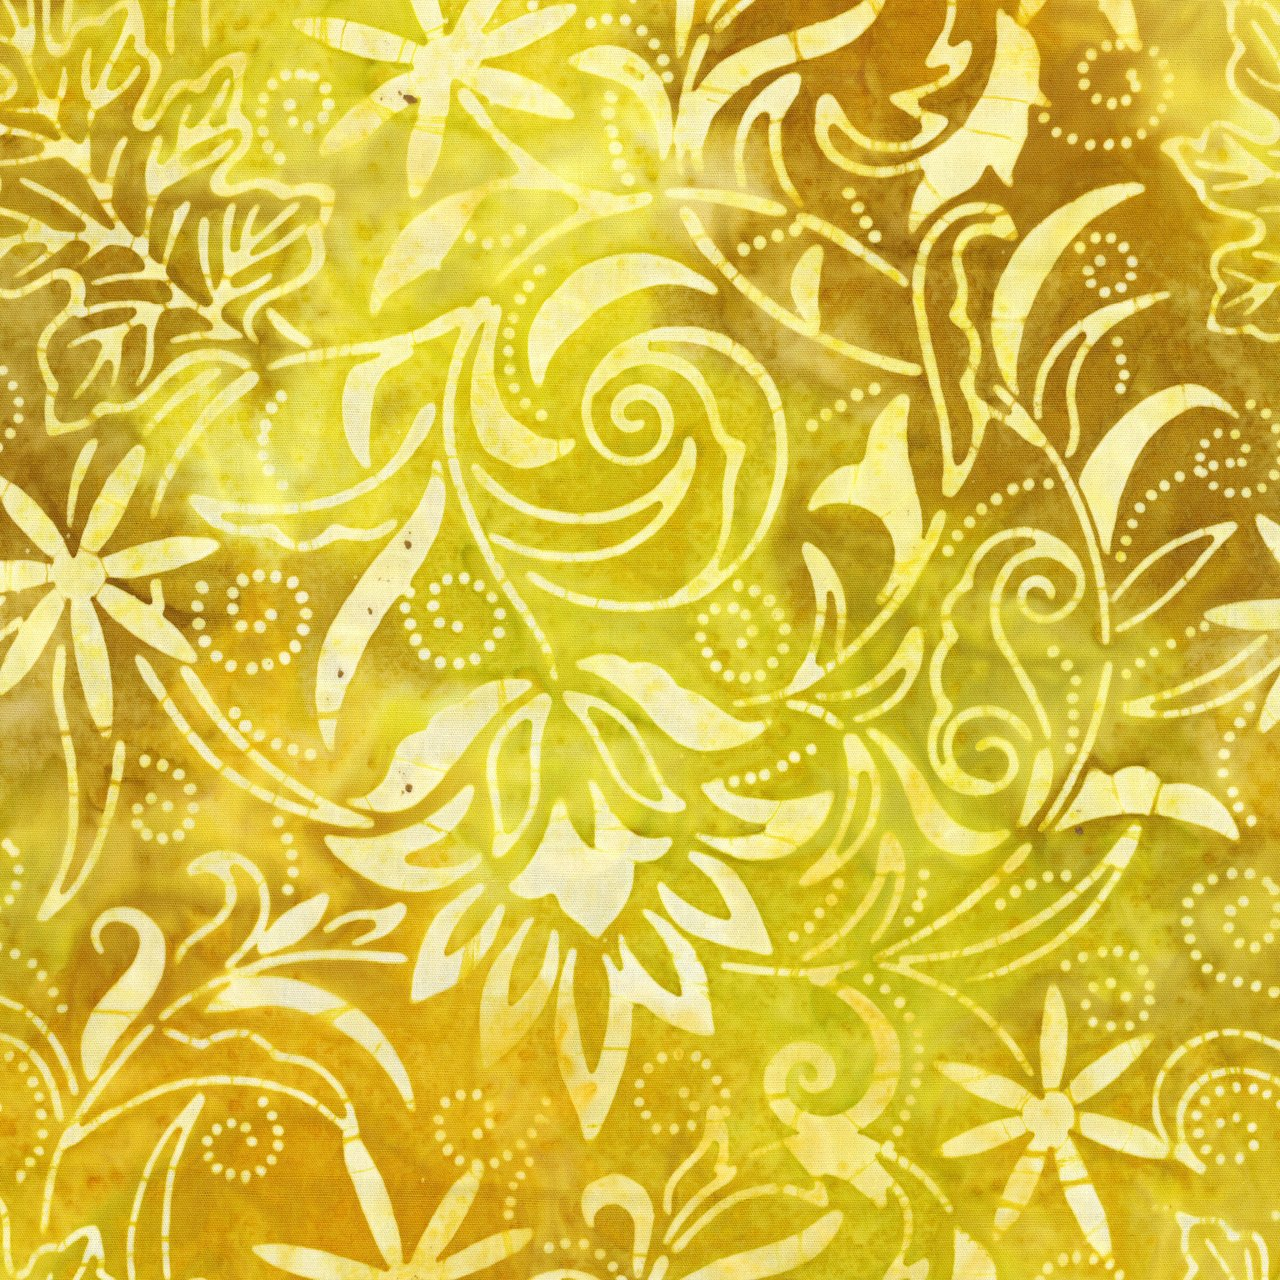 Anthology Batik Print - Contour Floral 206Q-4